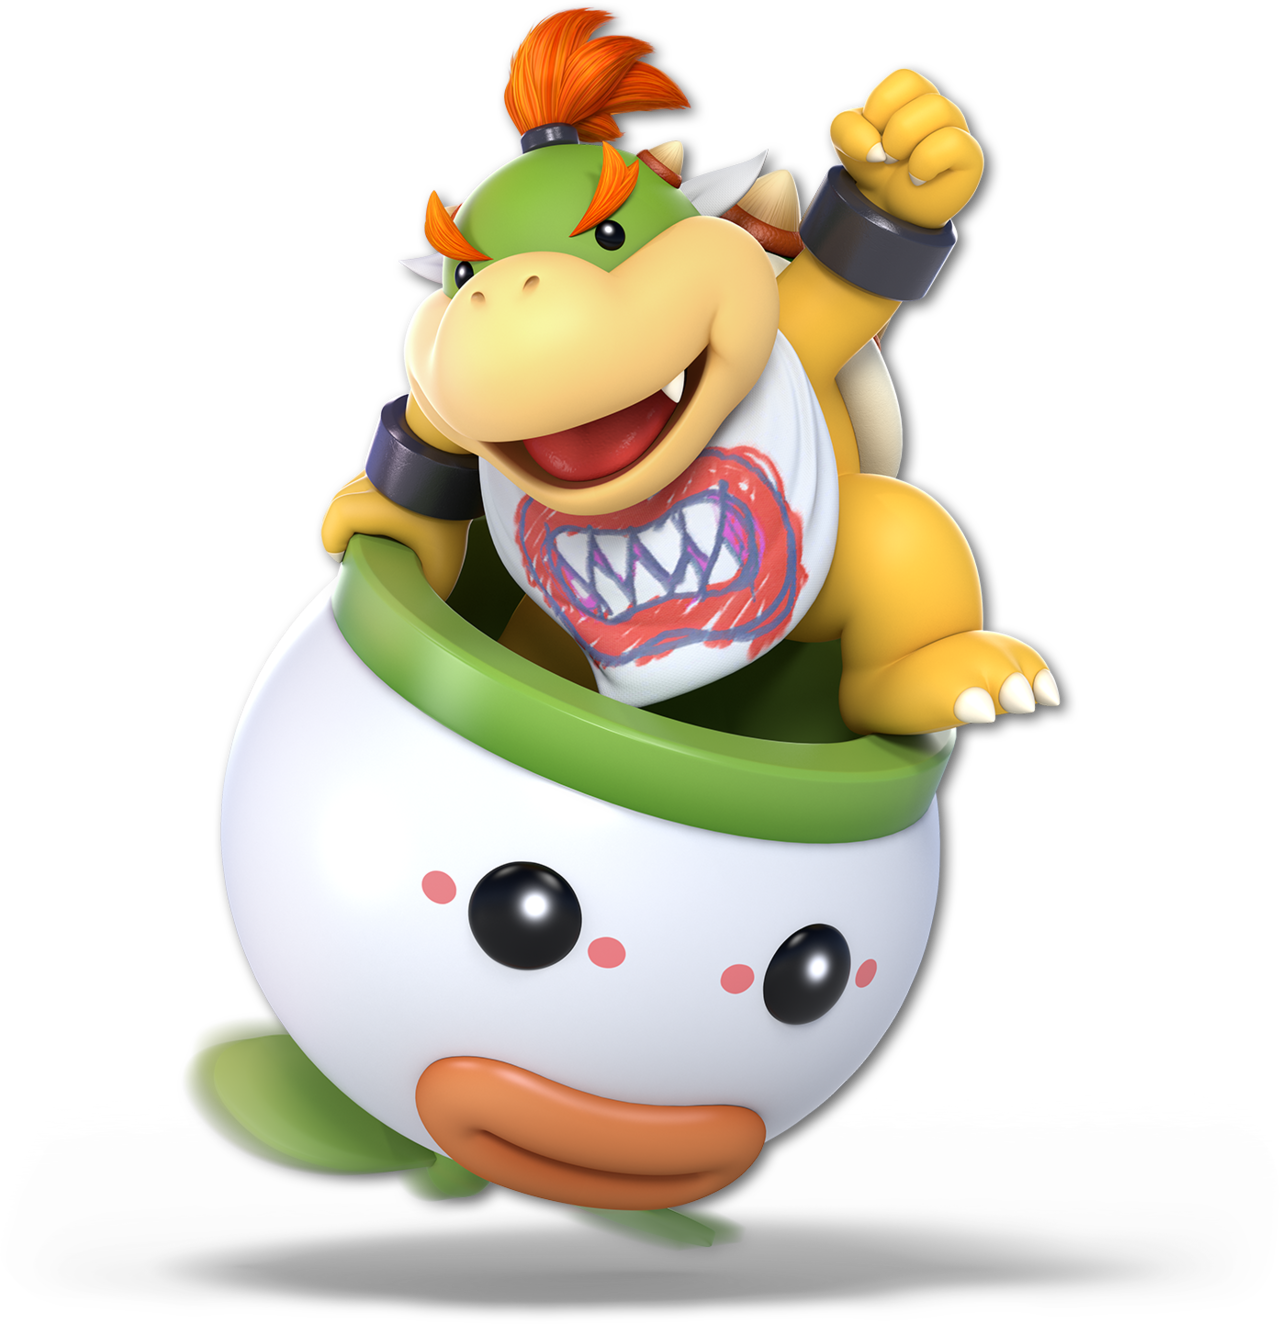 Bowser Jr  as he appears in Super Smash Bros  Ultimate